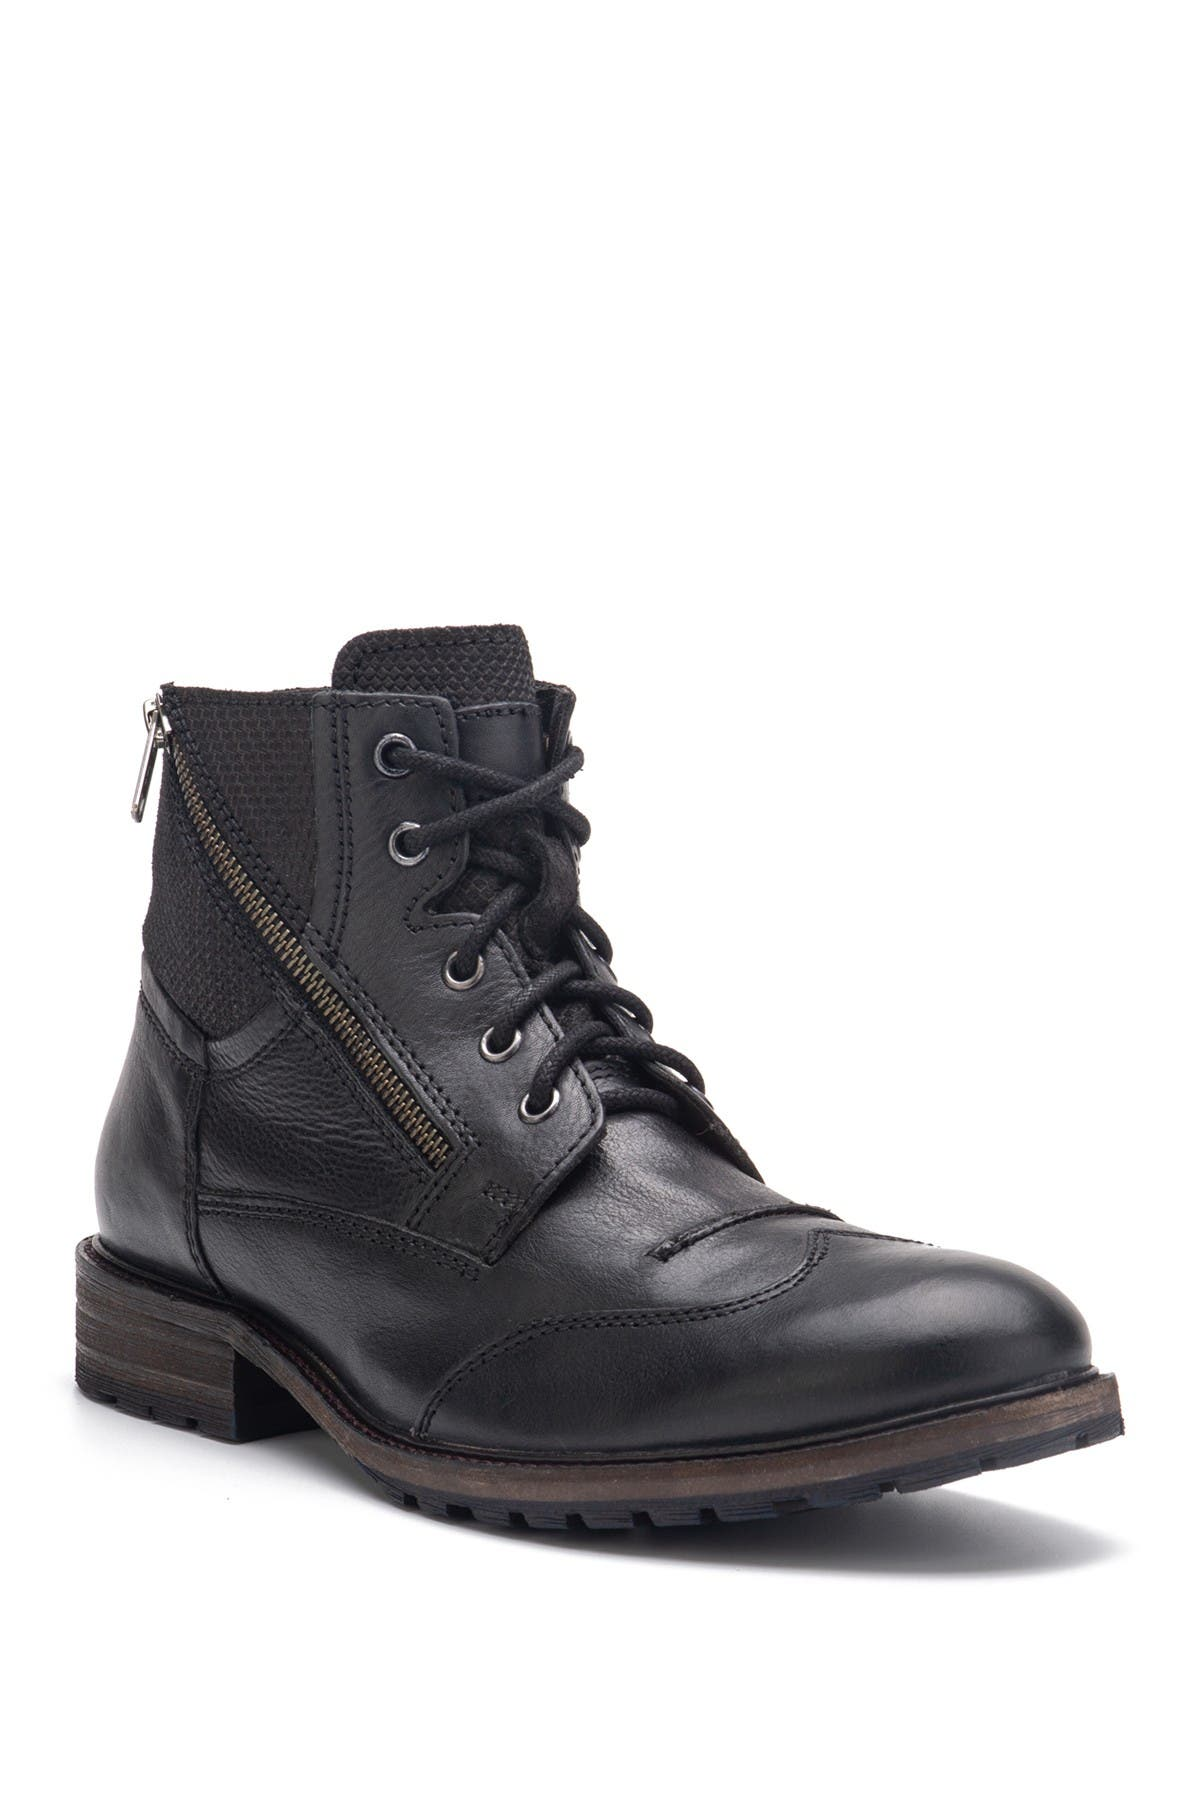 Image of Vintage Foundry Harrison Wingtip Leather Boot